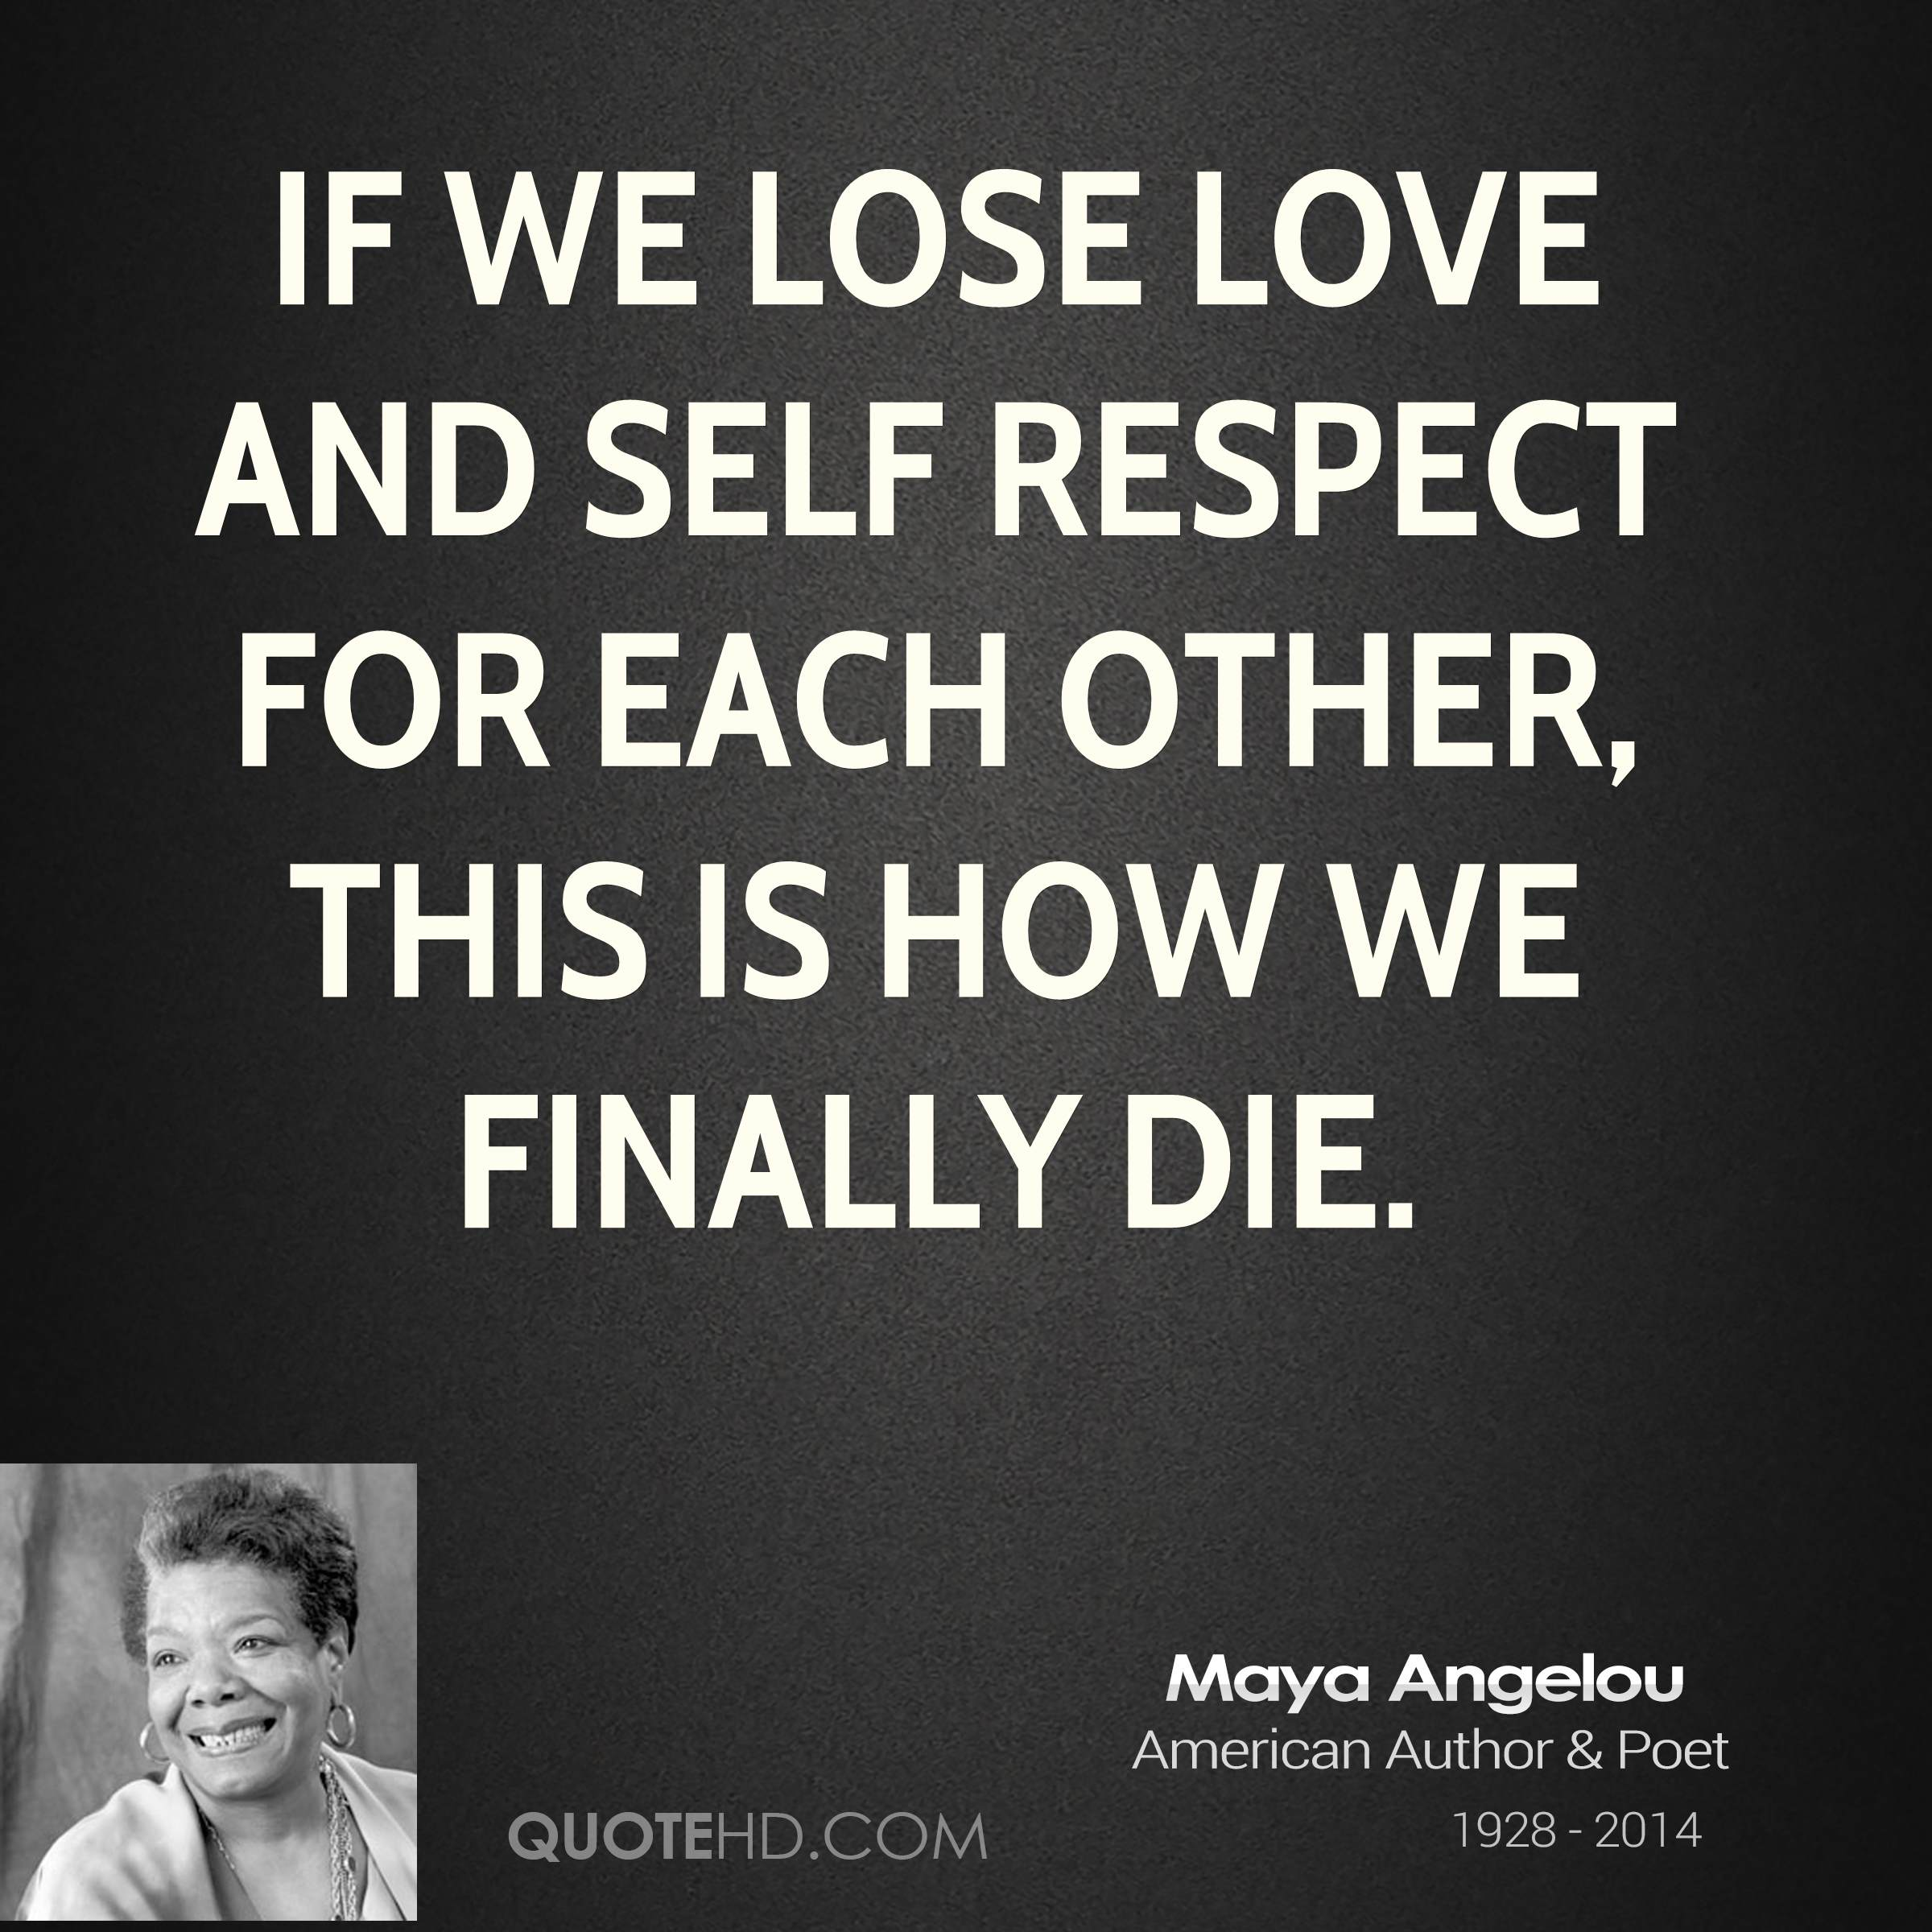 If We Lose Love And Self Respect For Each Other, This Is How We Finally